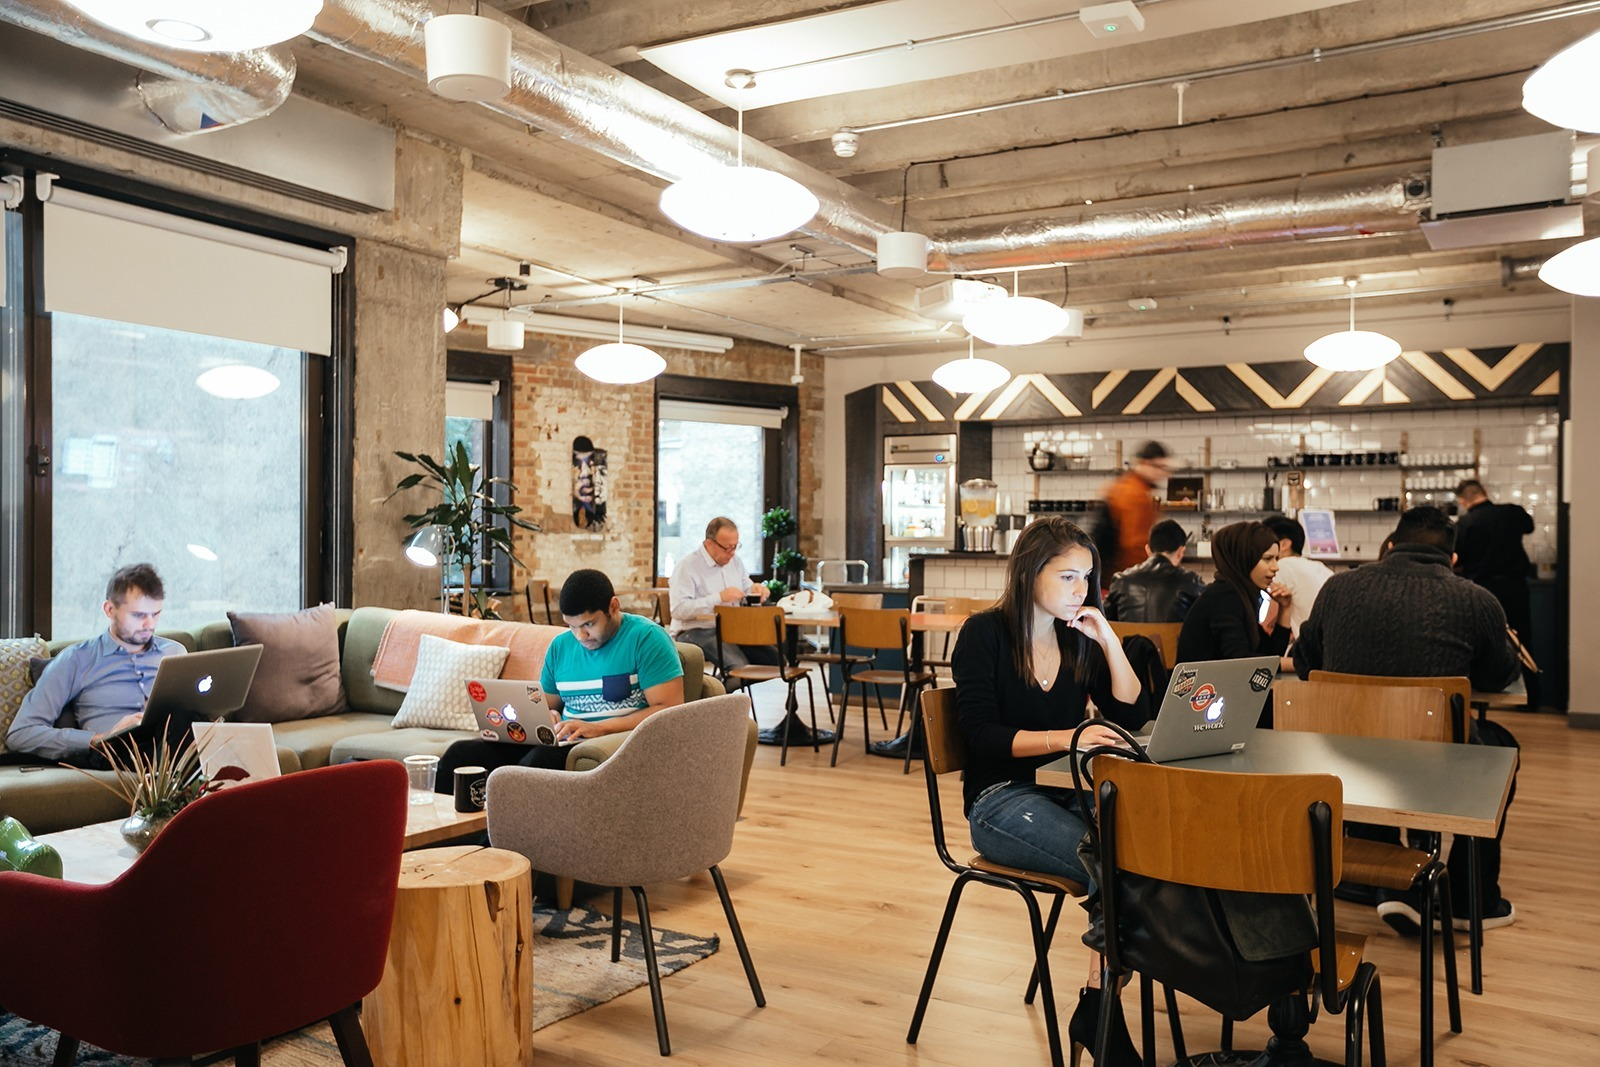 Inside wework s trendy coworking space in devonshire for Bar coworking milano